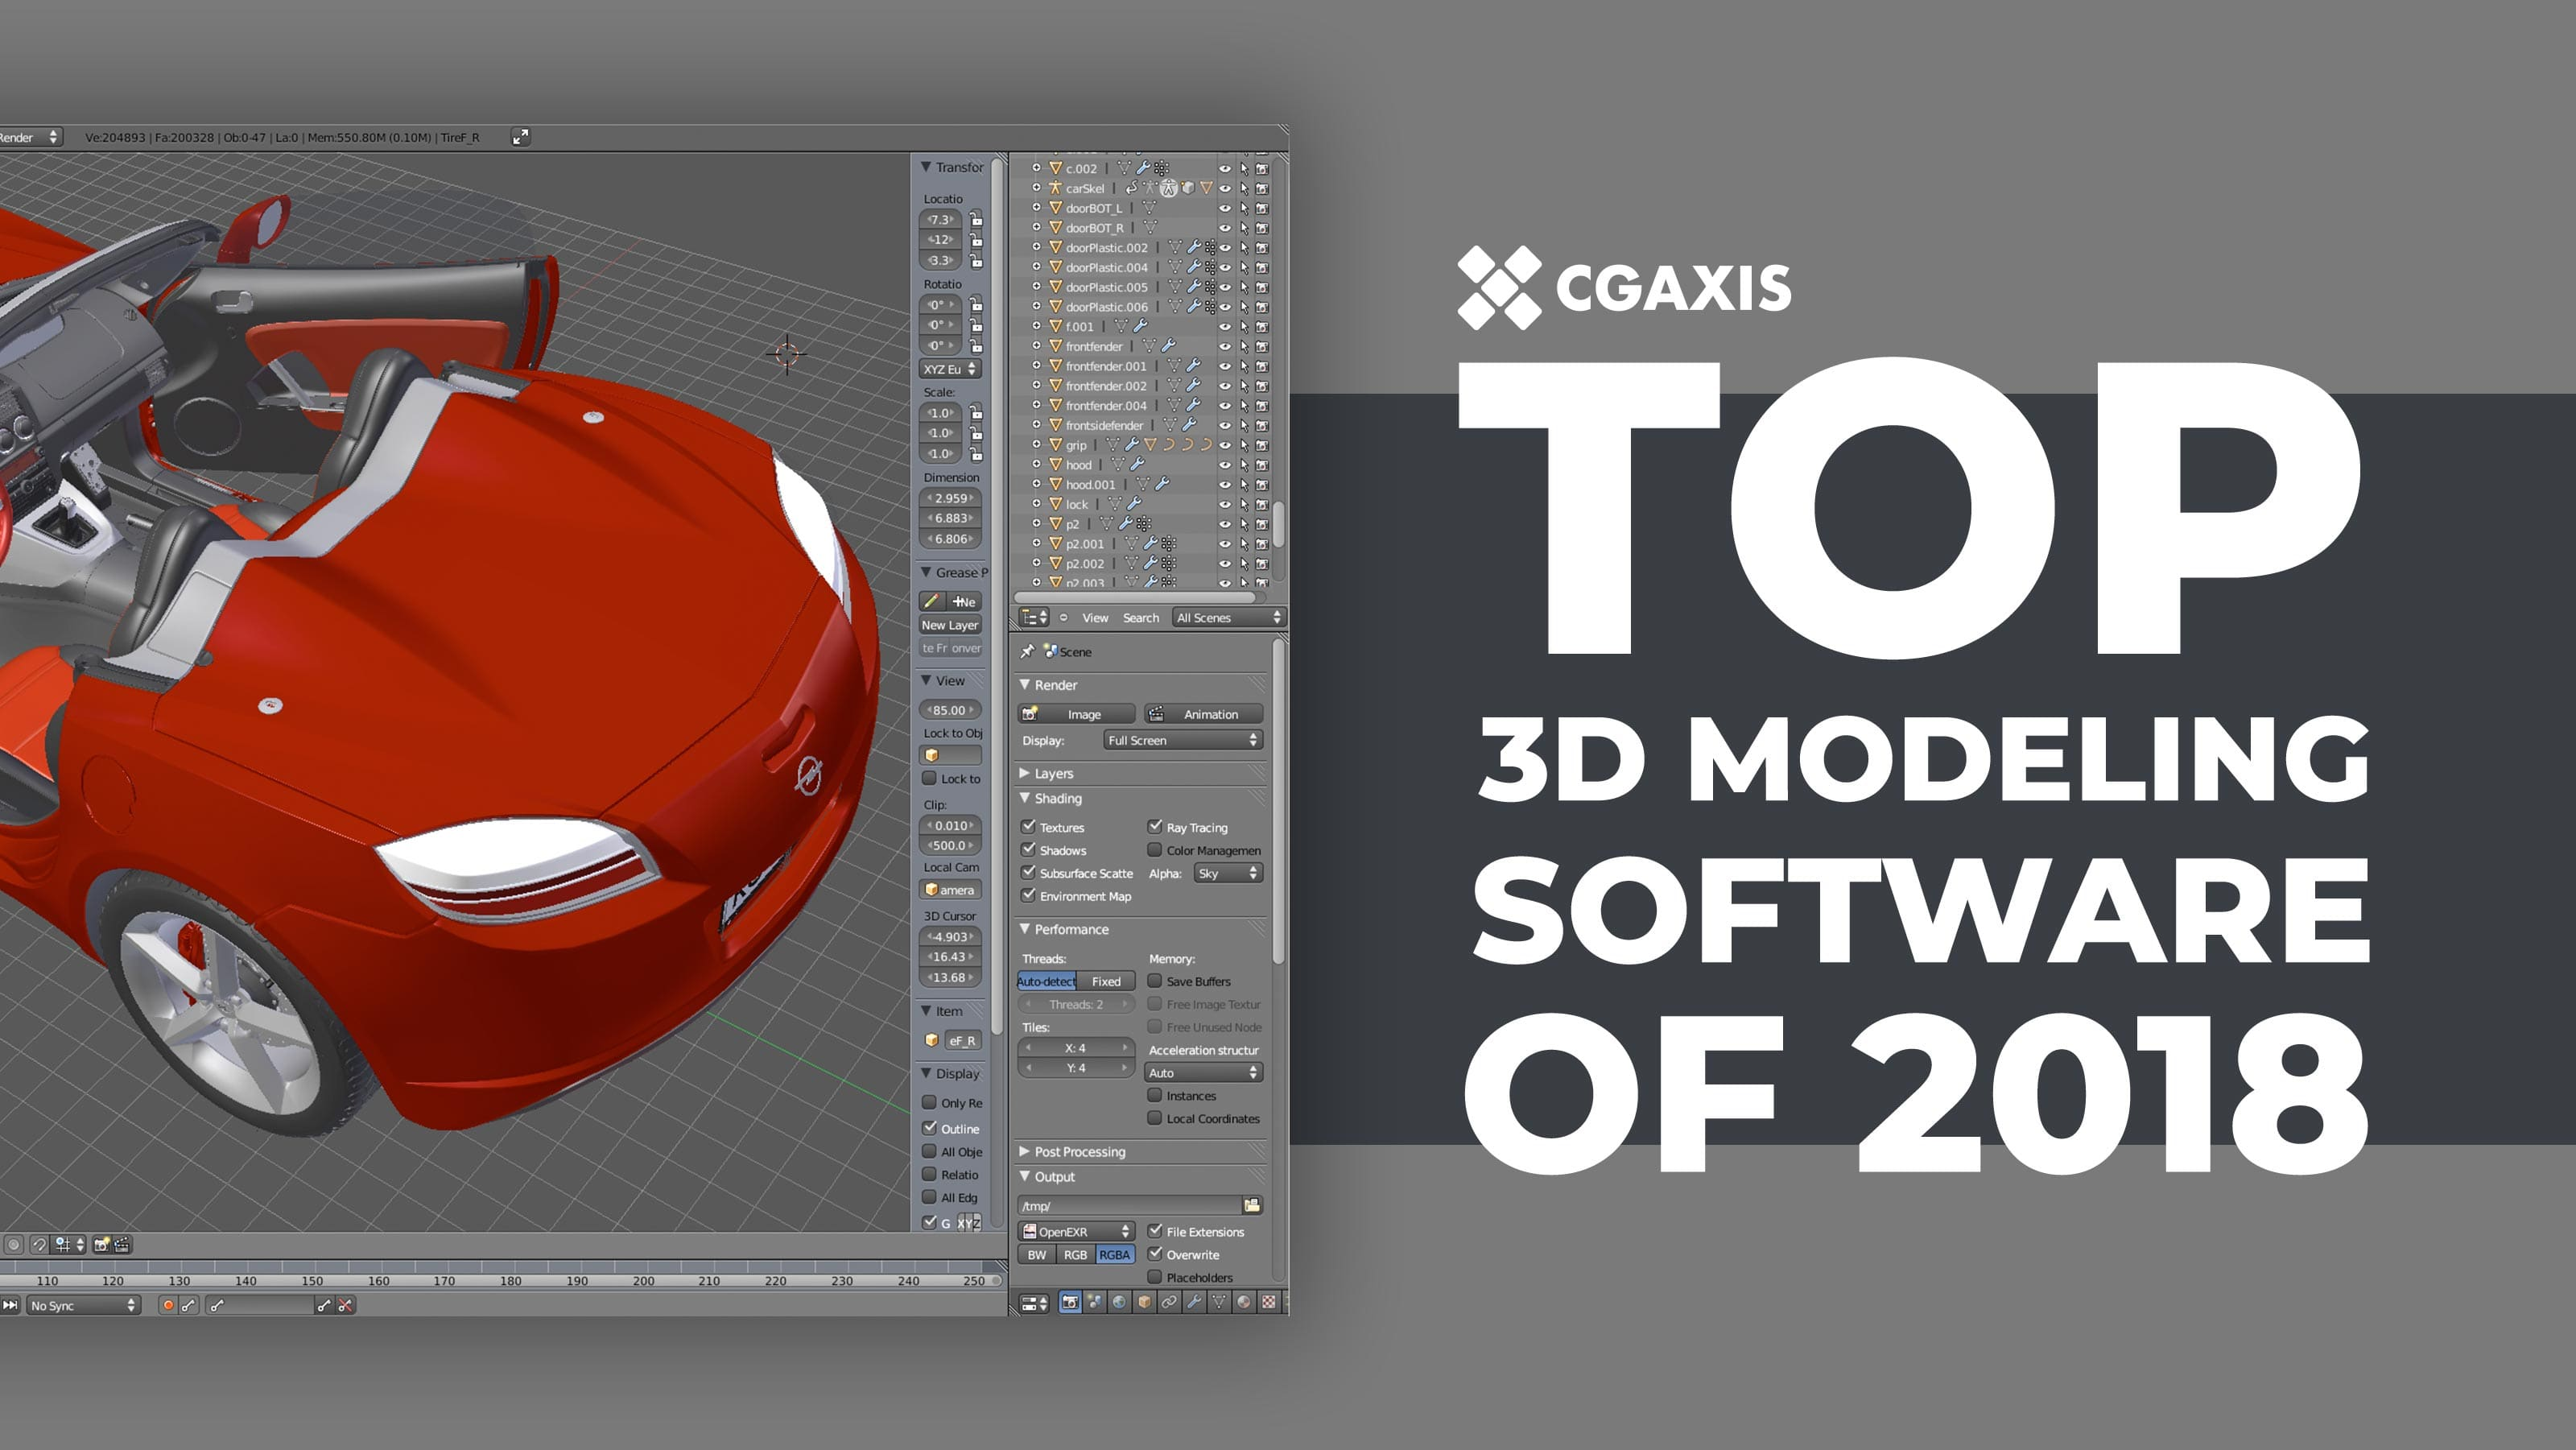 3D modeling software top 2018 CGAxis